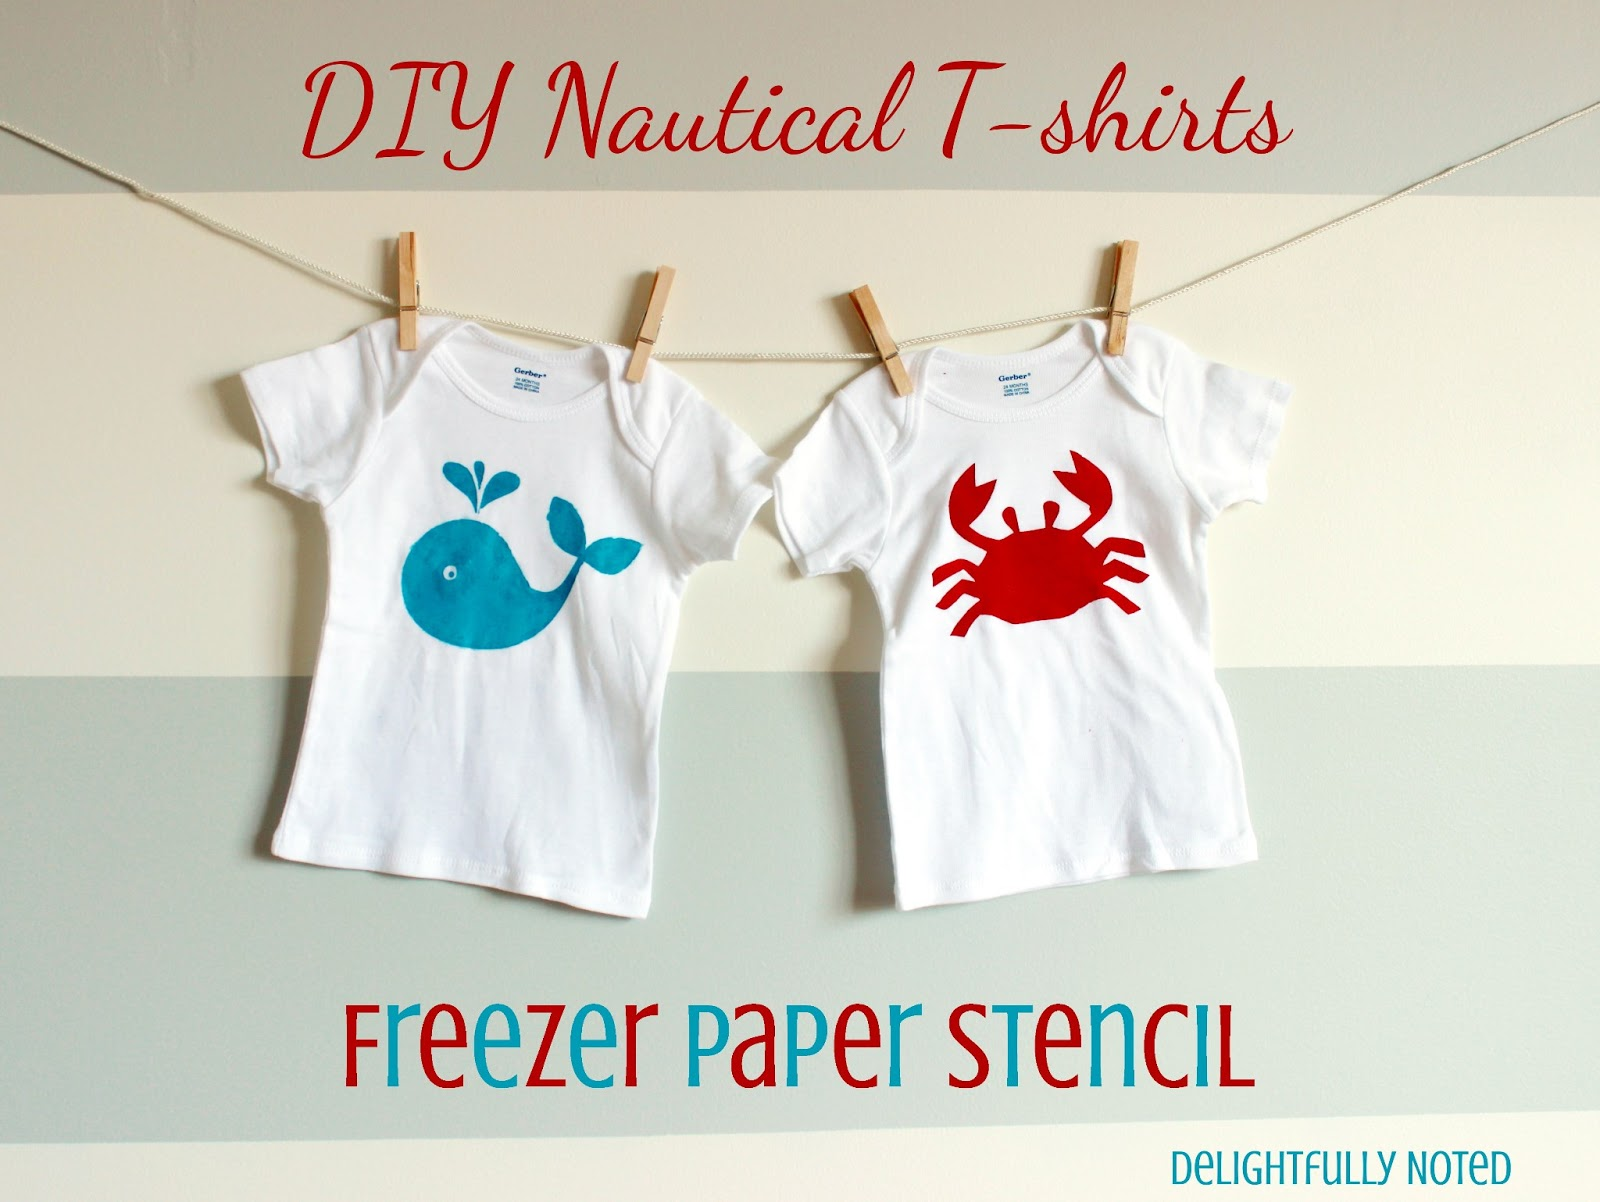 how-to-make-freezer-paper-stencil-shirts